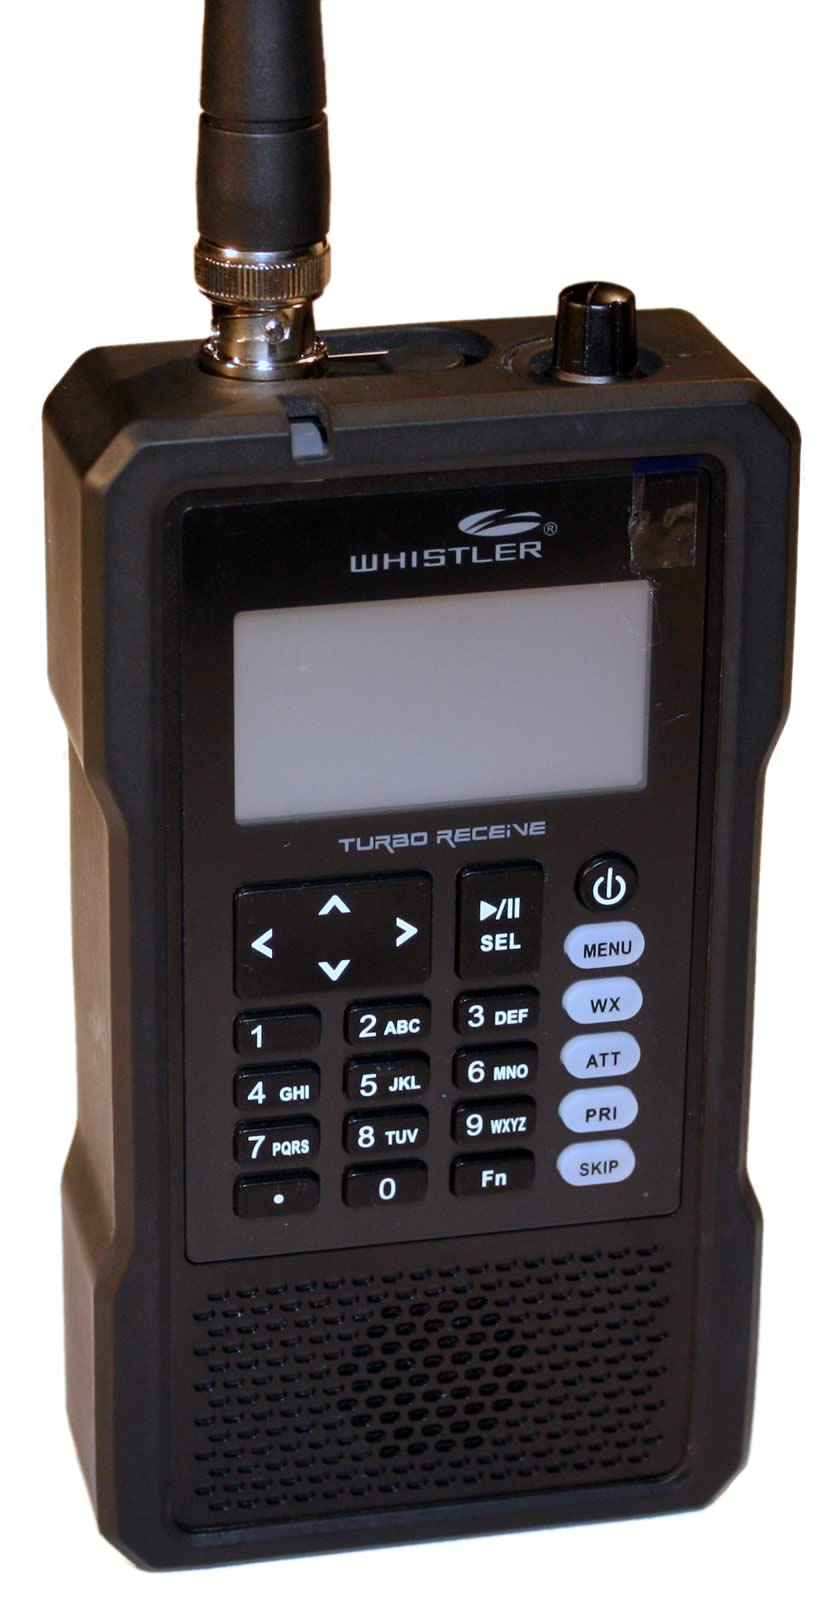 Whistler TRX-1 Handheld Digital Radio Scanner Featuring NXDN, DMR, and P25  Phase 2 Technology (no upgrade required), Includes Bumper Case